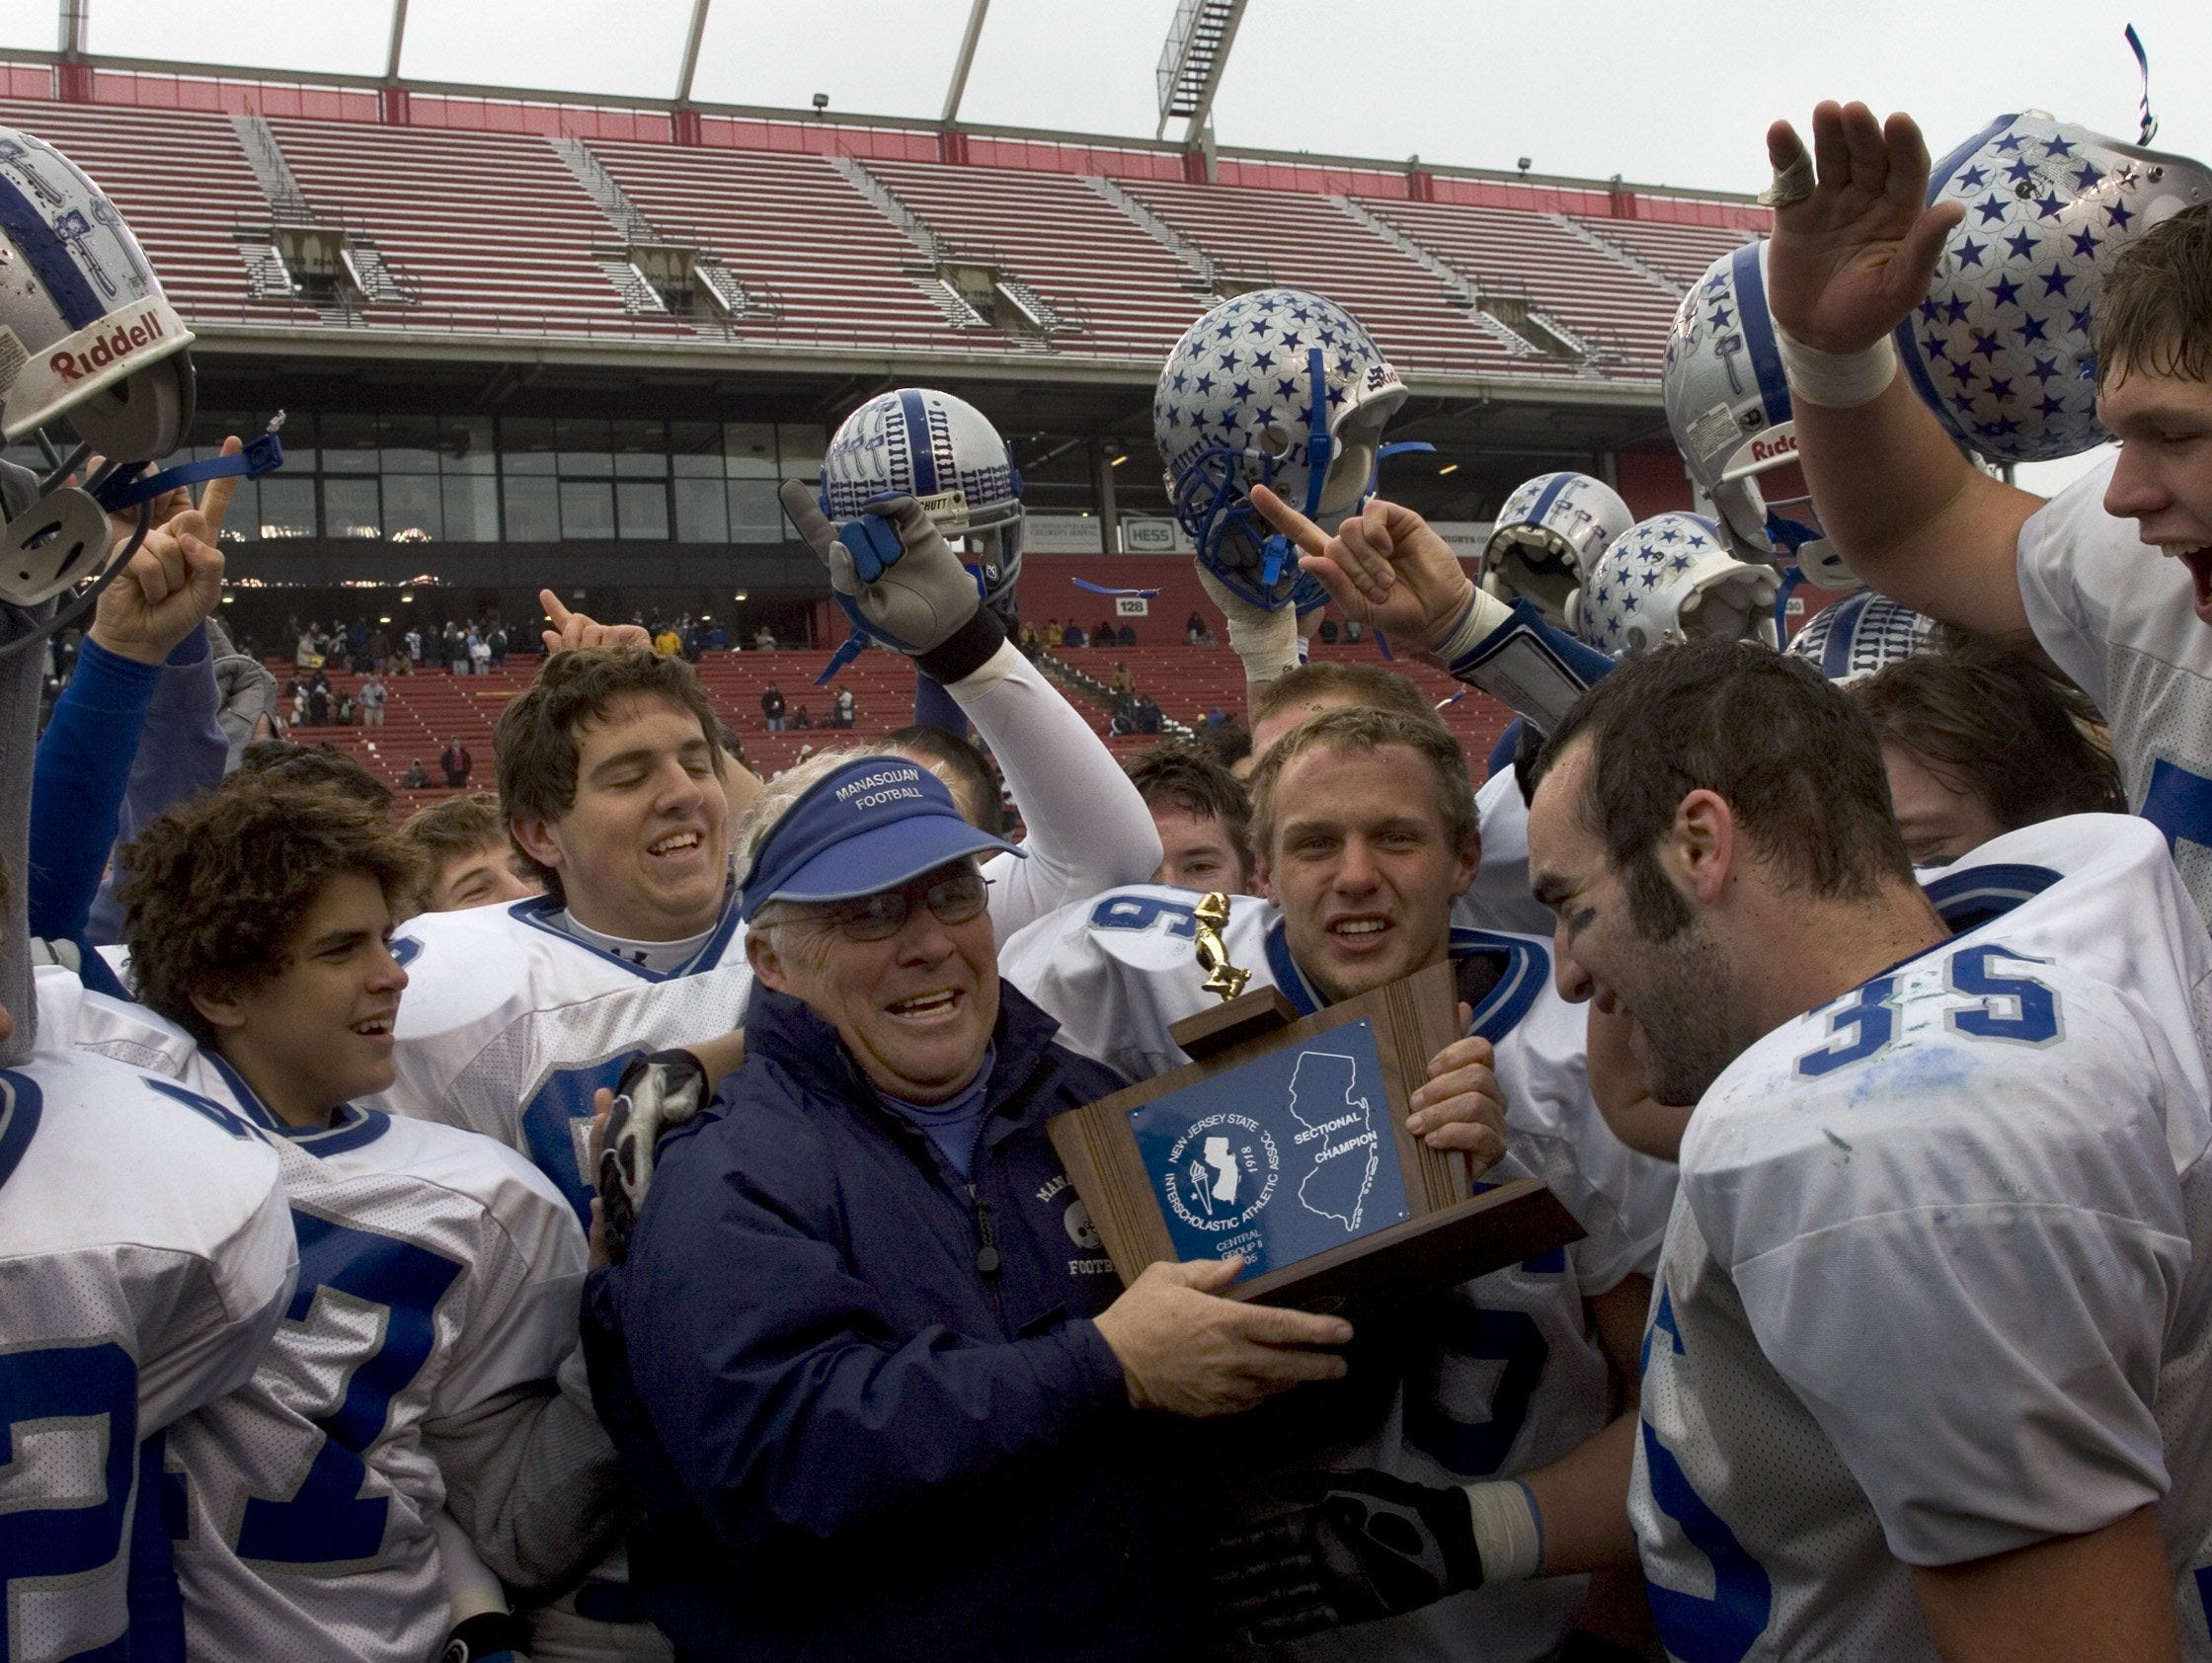 Manasquan coach Vic Kubu holds up championship trophy in 2005. Kubu coaches seven teams to unbeaten seasons over the years.